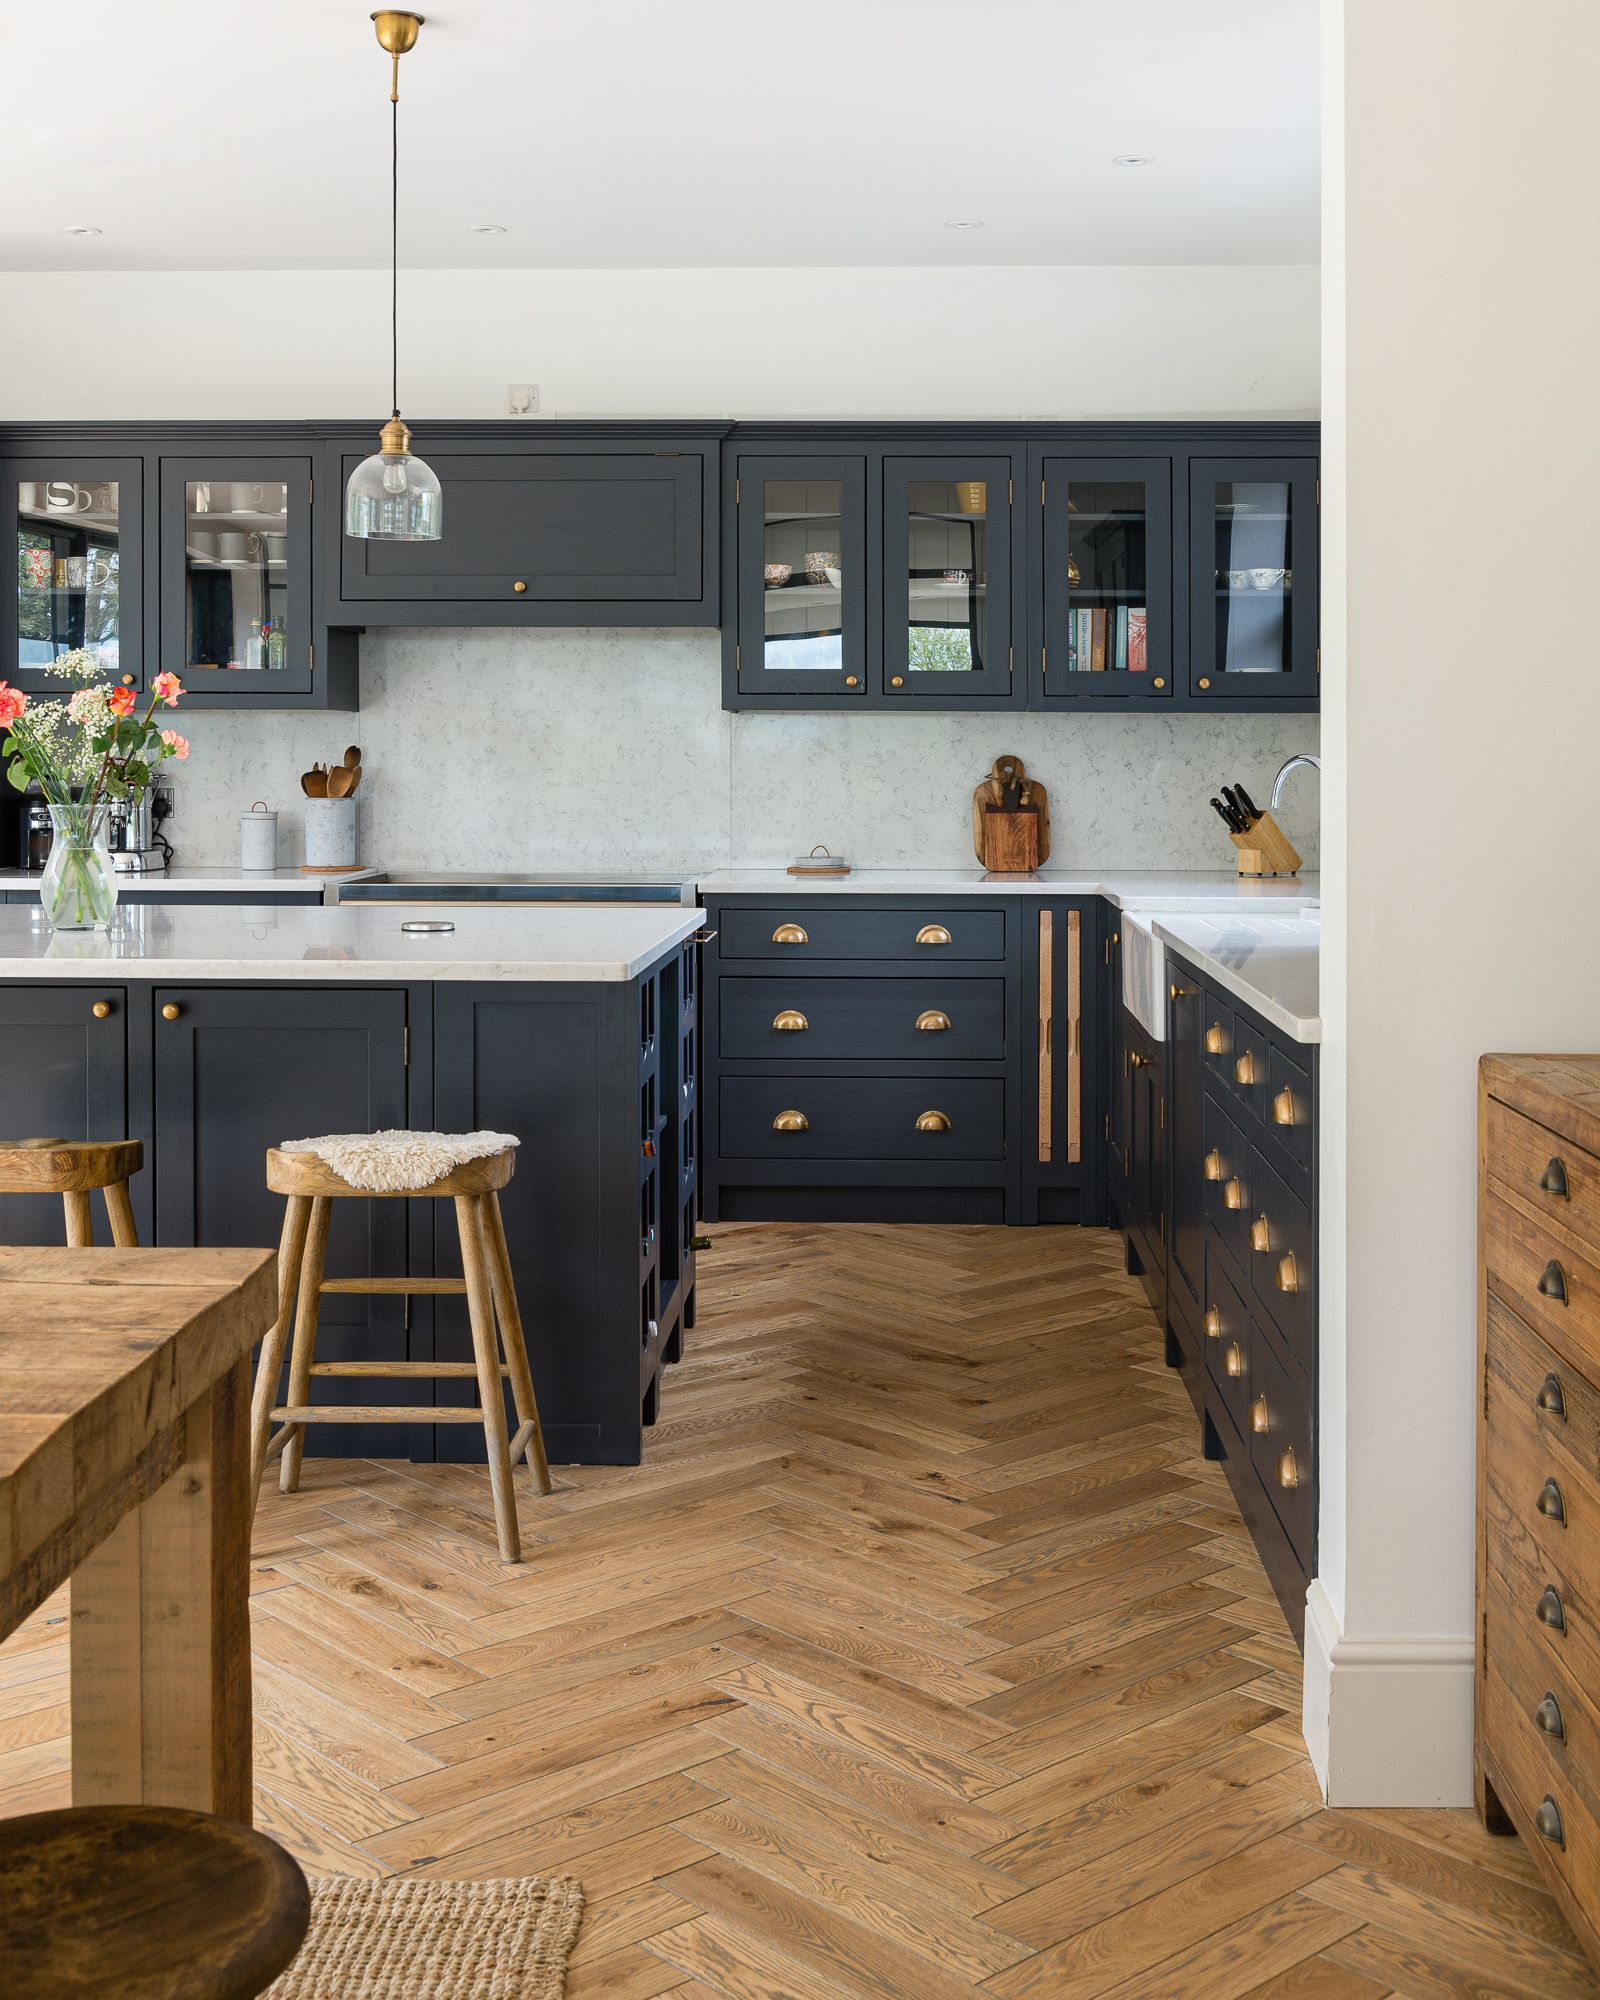 The stunning herringbone flooring and our bespoke cabinetry make this one of our most popular kitchens to date!  Classic dark tones throughout the kitchen compliment the warm oak flooring and brass cabinet handles and fittings.  So lovely.